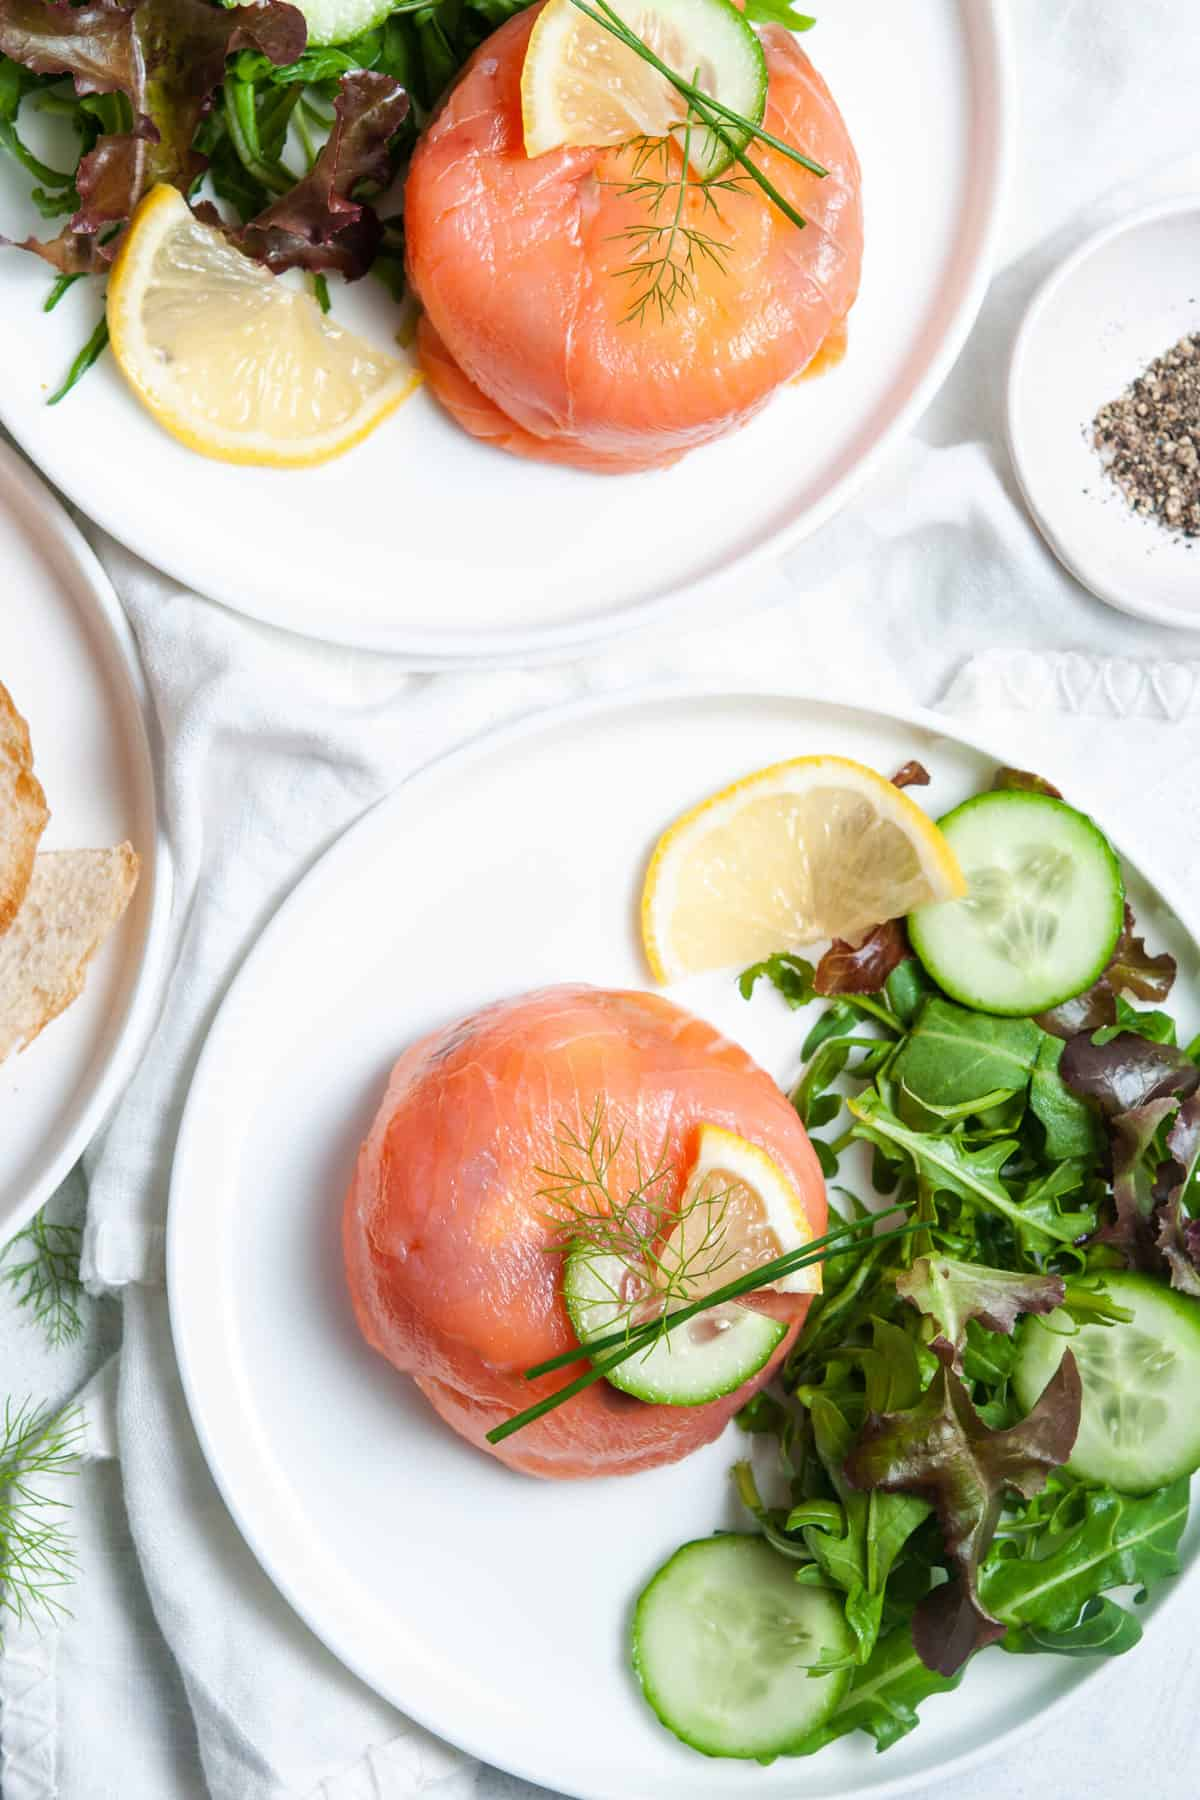 overhead shot of salmon parcel, on white plate, with salad on the side and a lemon garnish, another plate with same sitting in background.